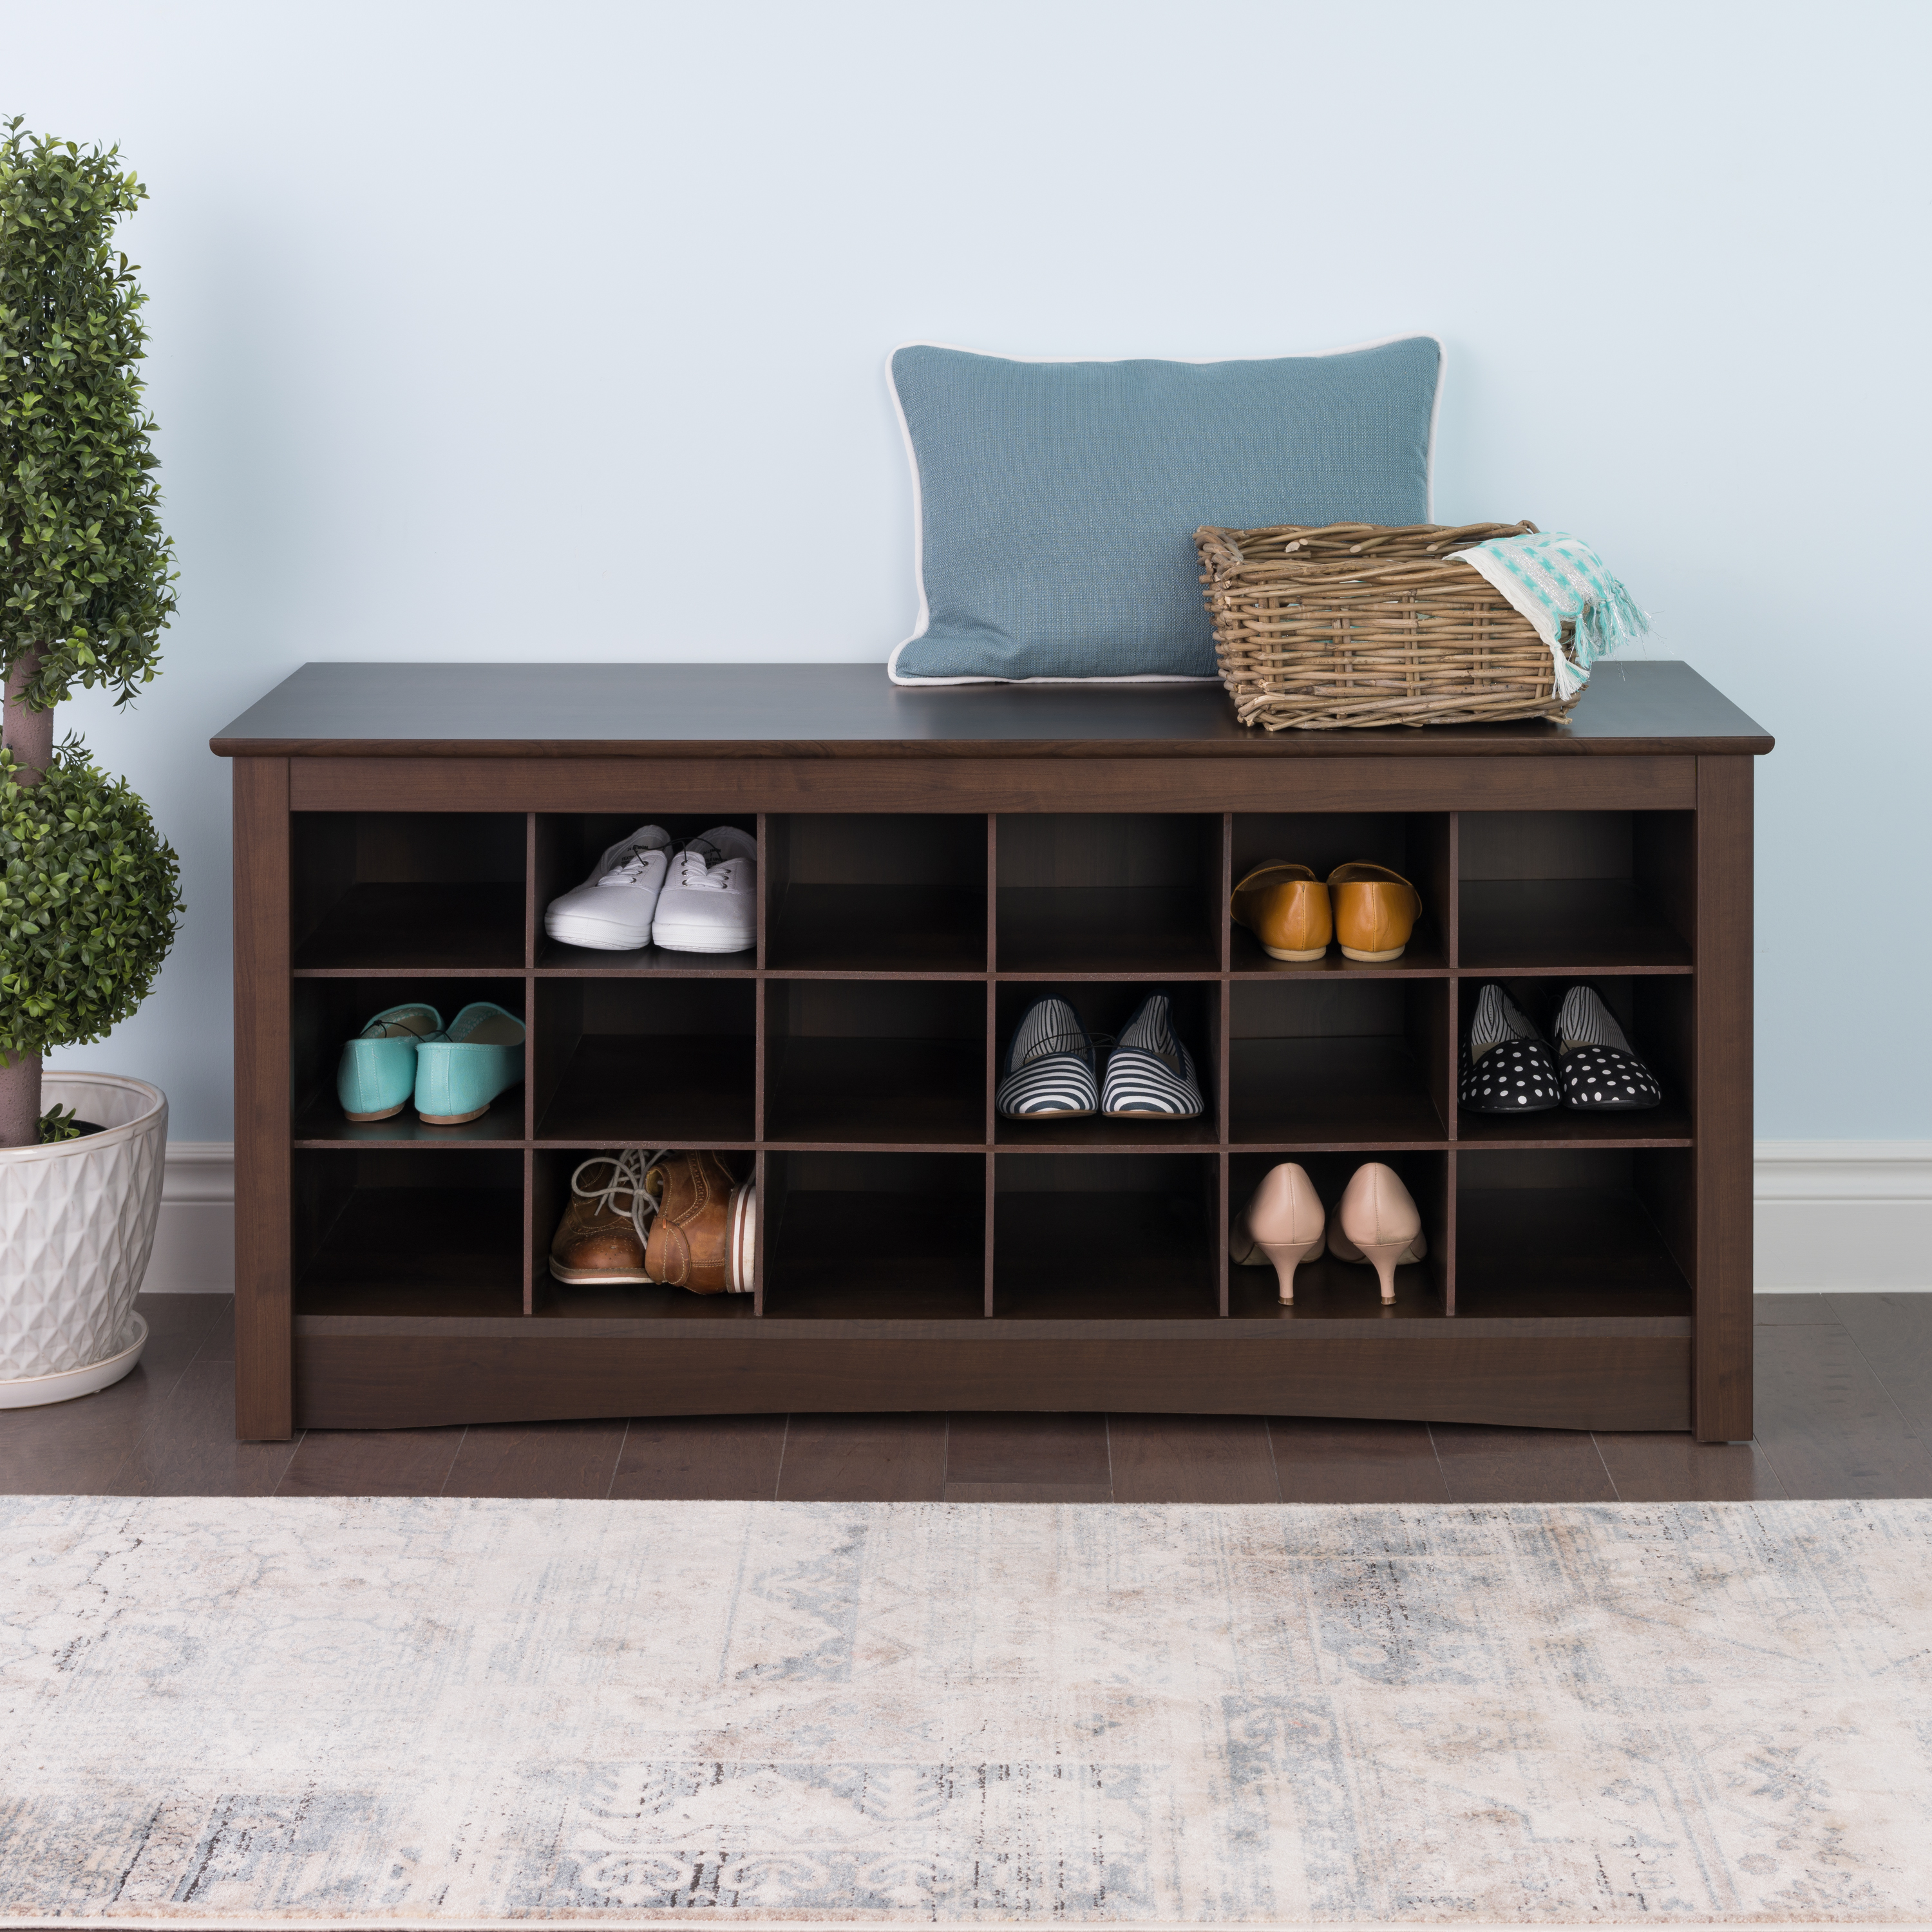 Beau Prepac Shoe Storage Cubbie Entryway Bench